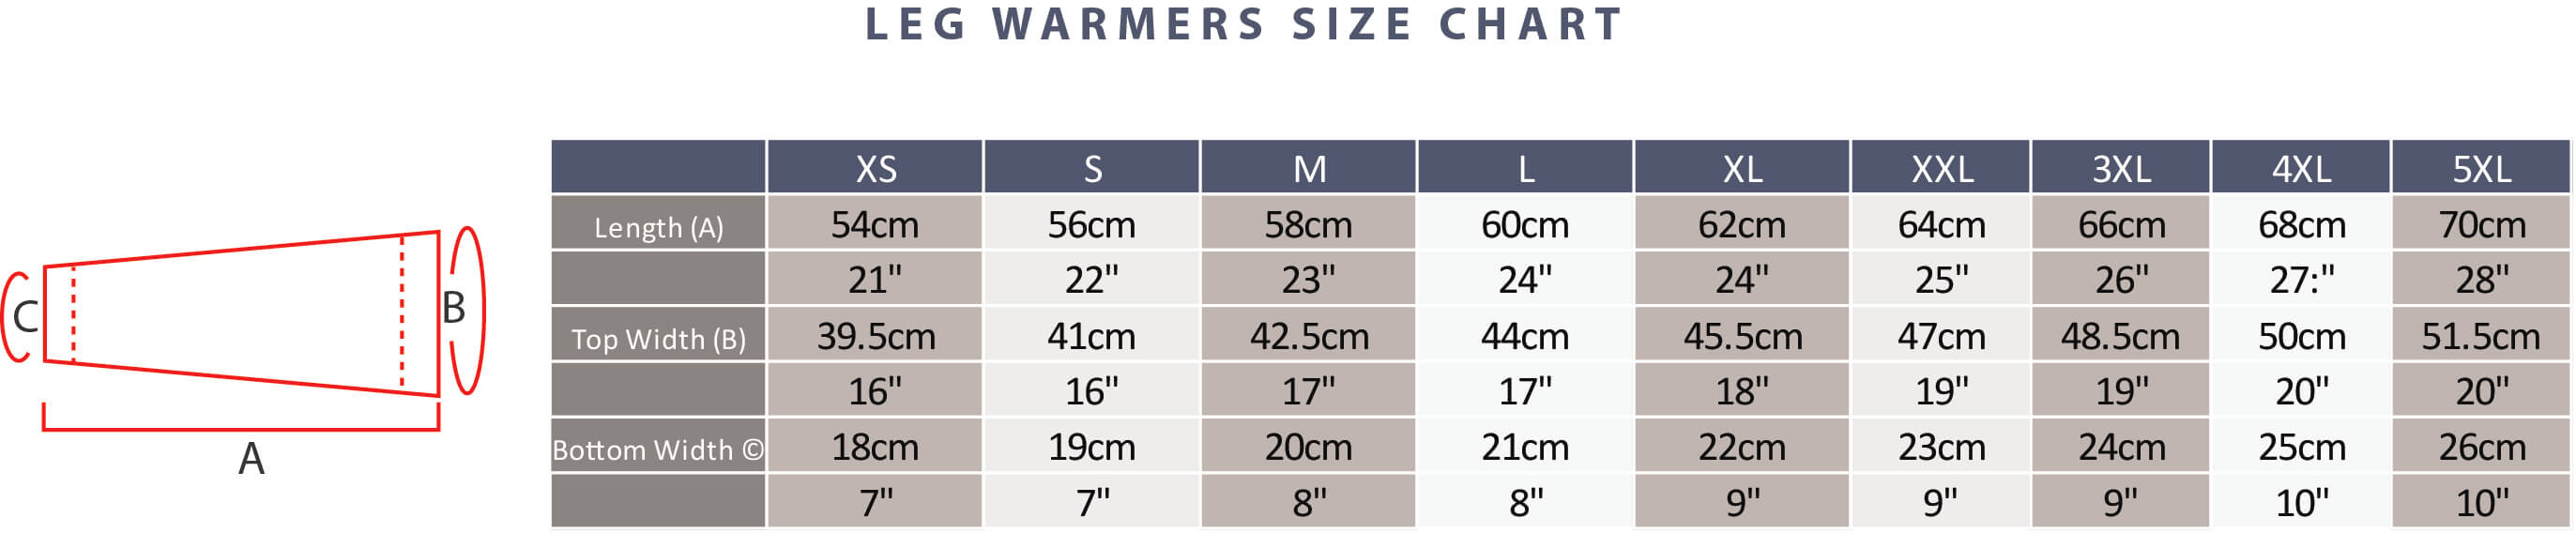 Leg Warmer Size Guide